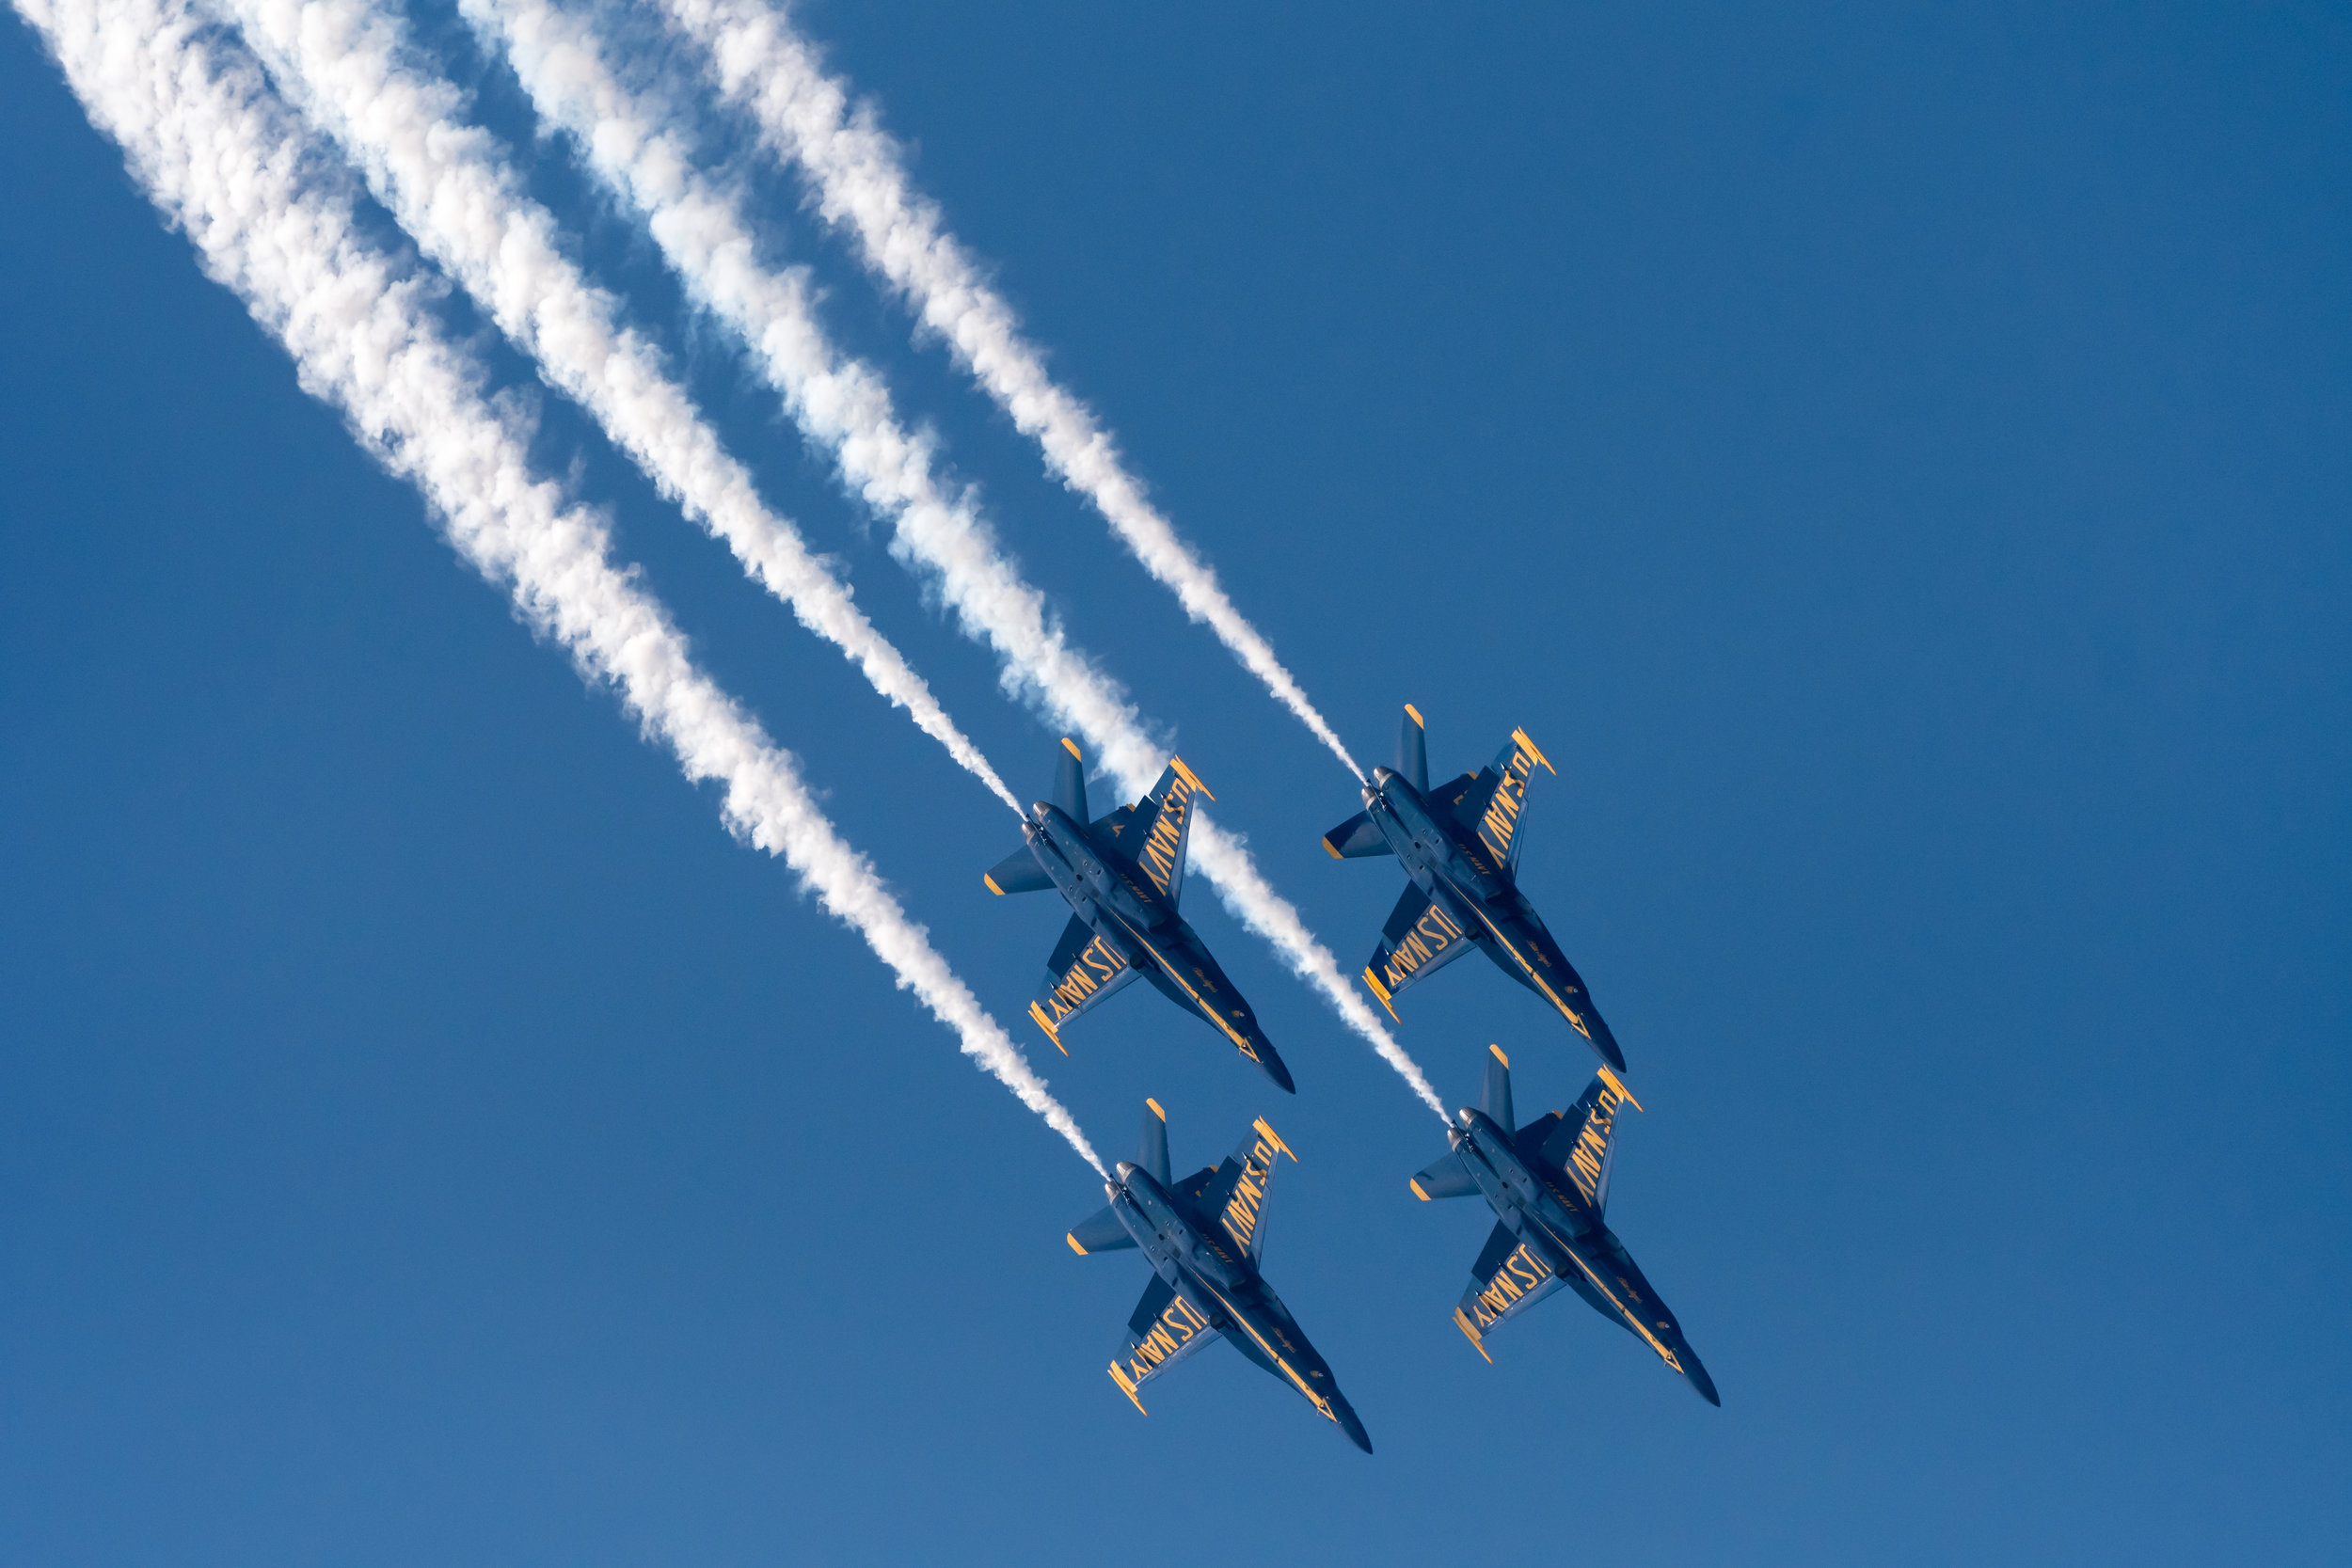 U.S. Navy Blue Angels perform at the NAS Oceana Air Show